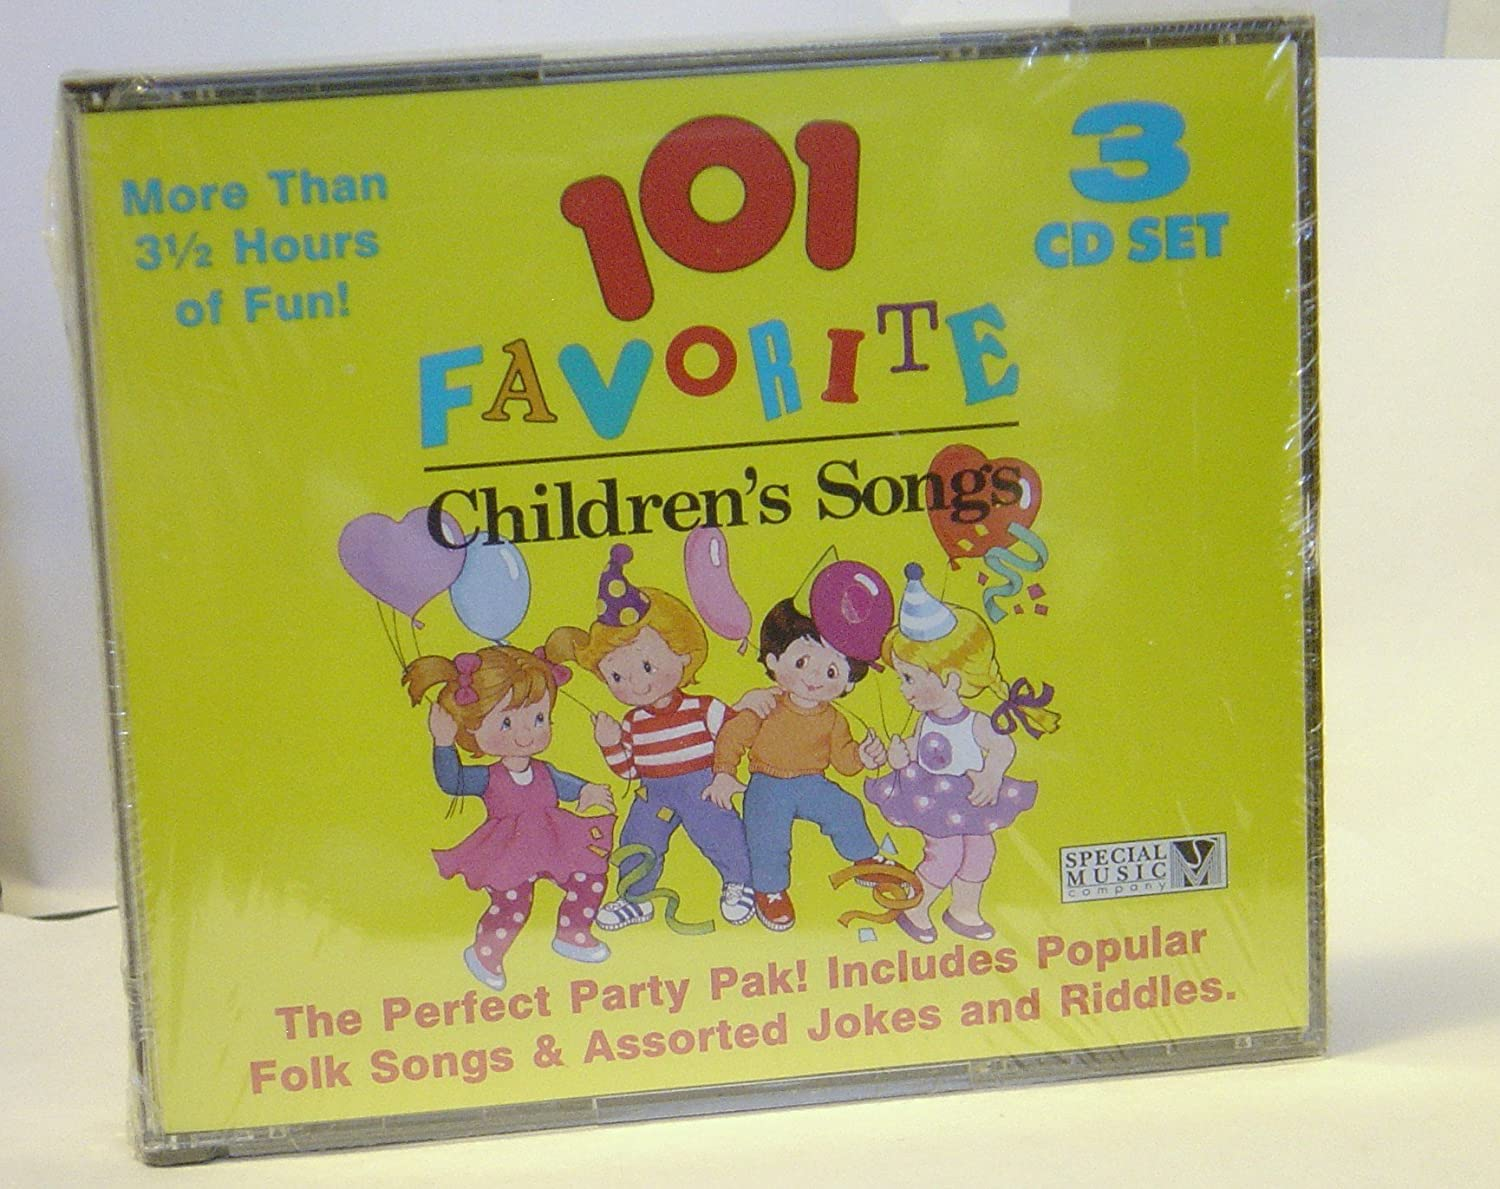 The Best 101 Children's Songs